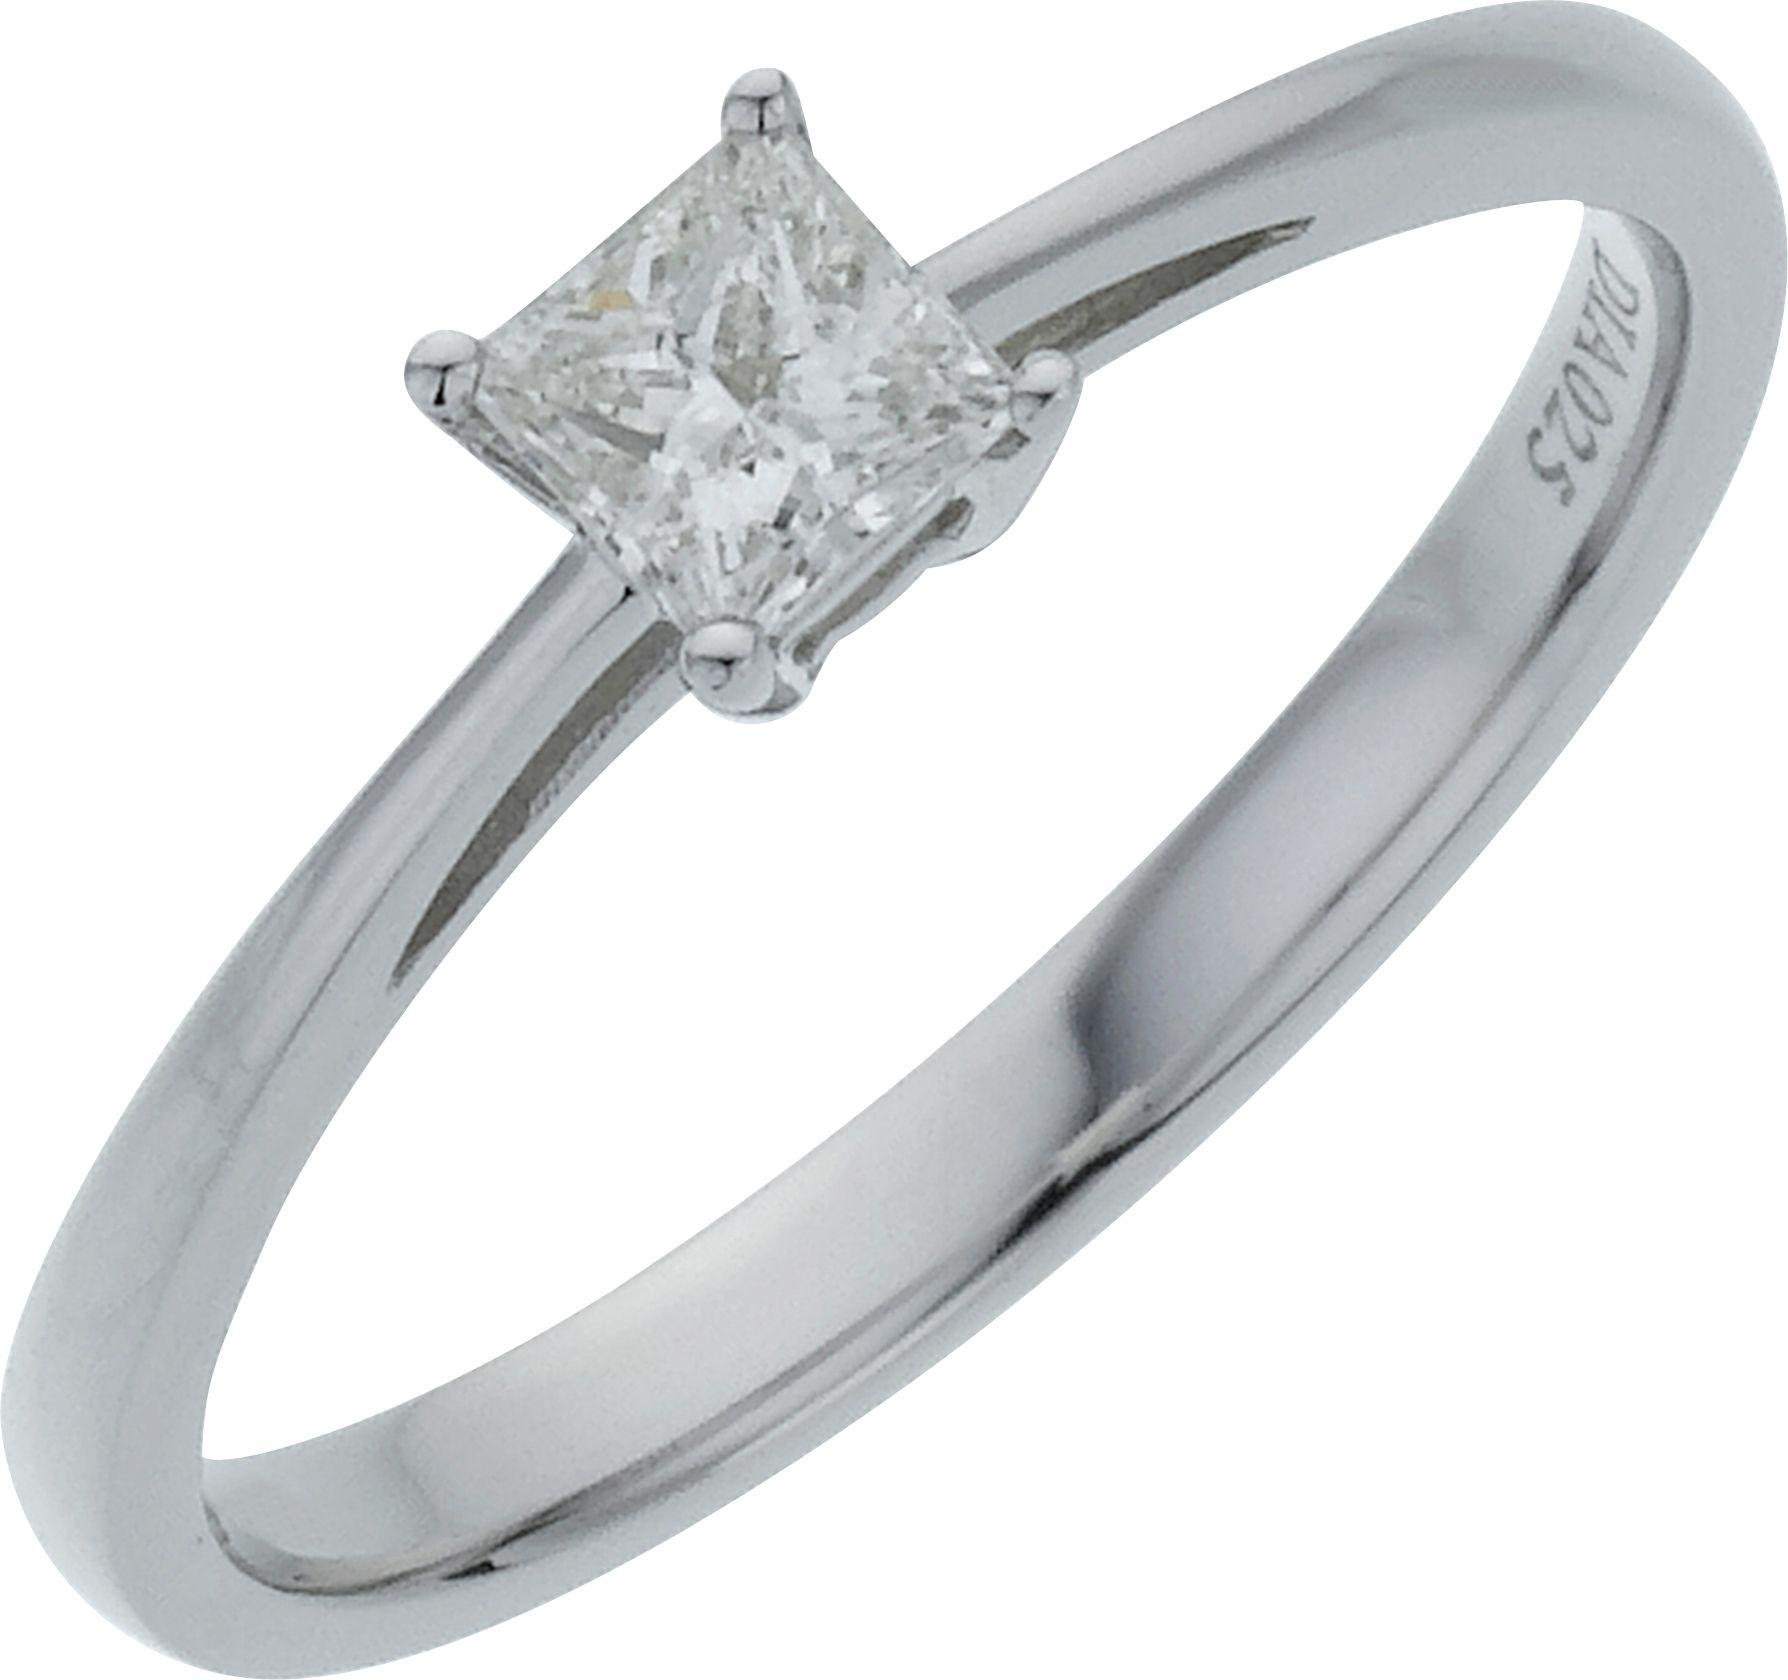 18 Carat White Gold 025 Carat Diamond - Princess Cut Diamond - Ring - M